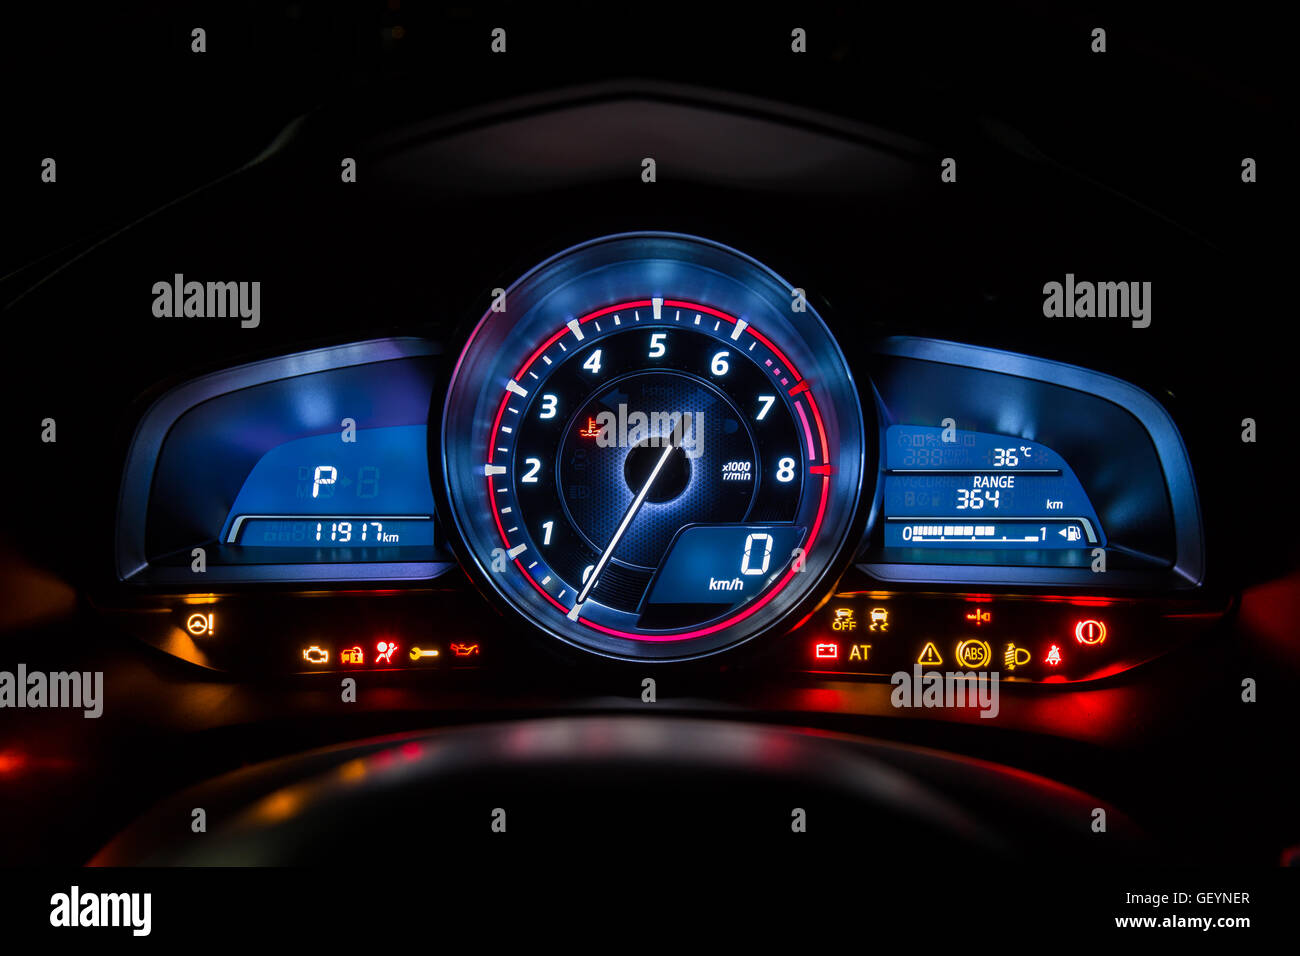 Modern Car Instrument Dashboard Panel Or Speedometer And Full - Car image sign of dashboardcar dashboard icons stock photospictures royalty free car